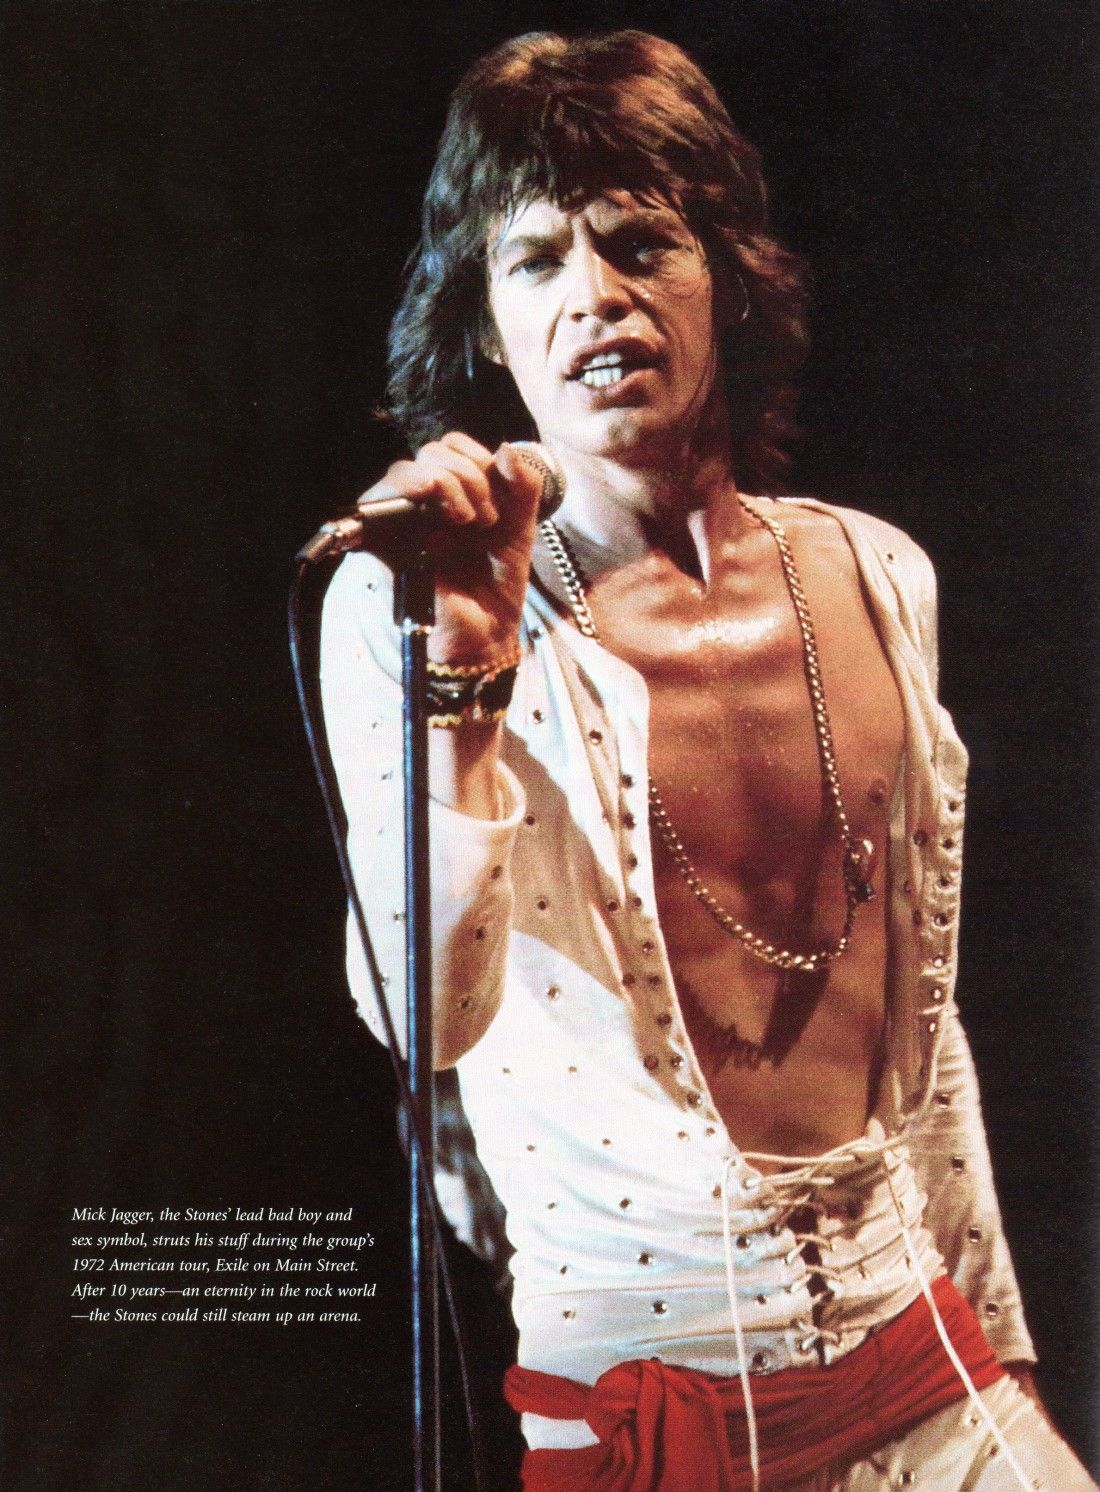 Mick Jagger Stage 1972 Rolling Stones